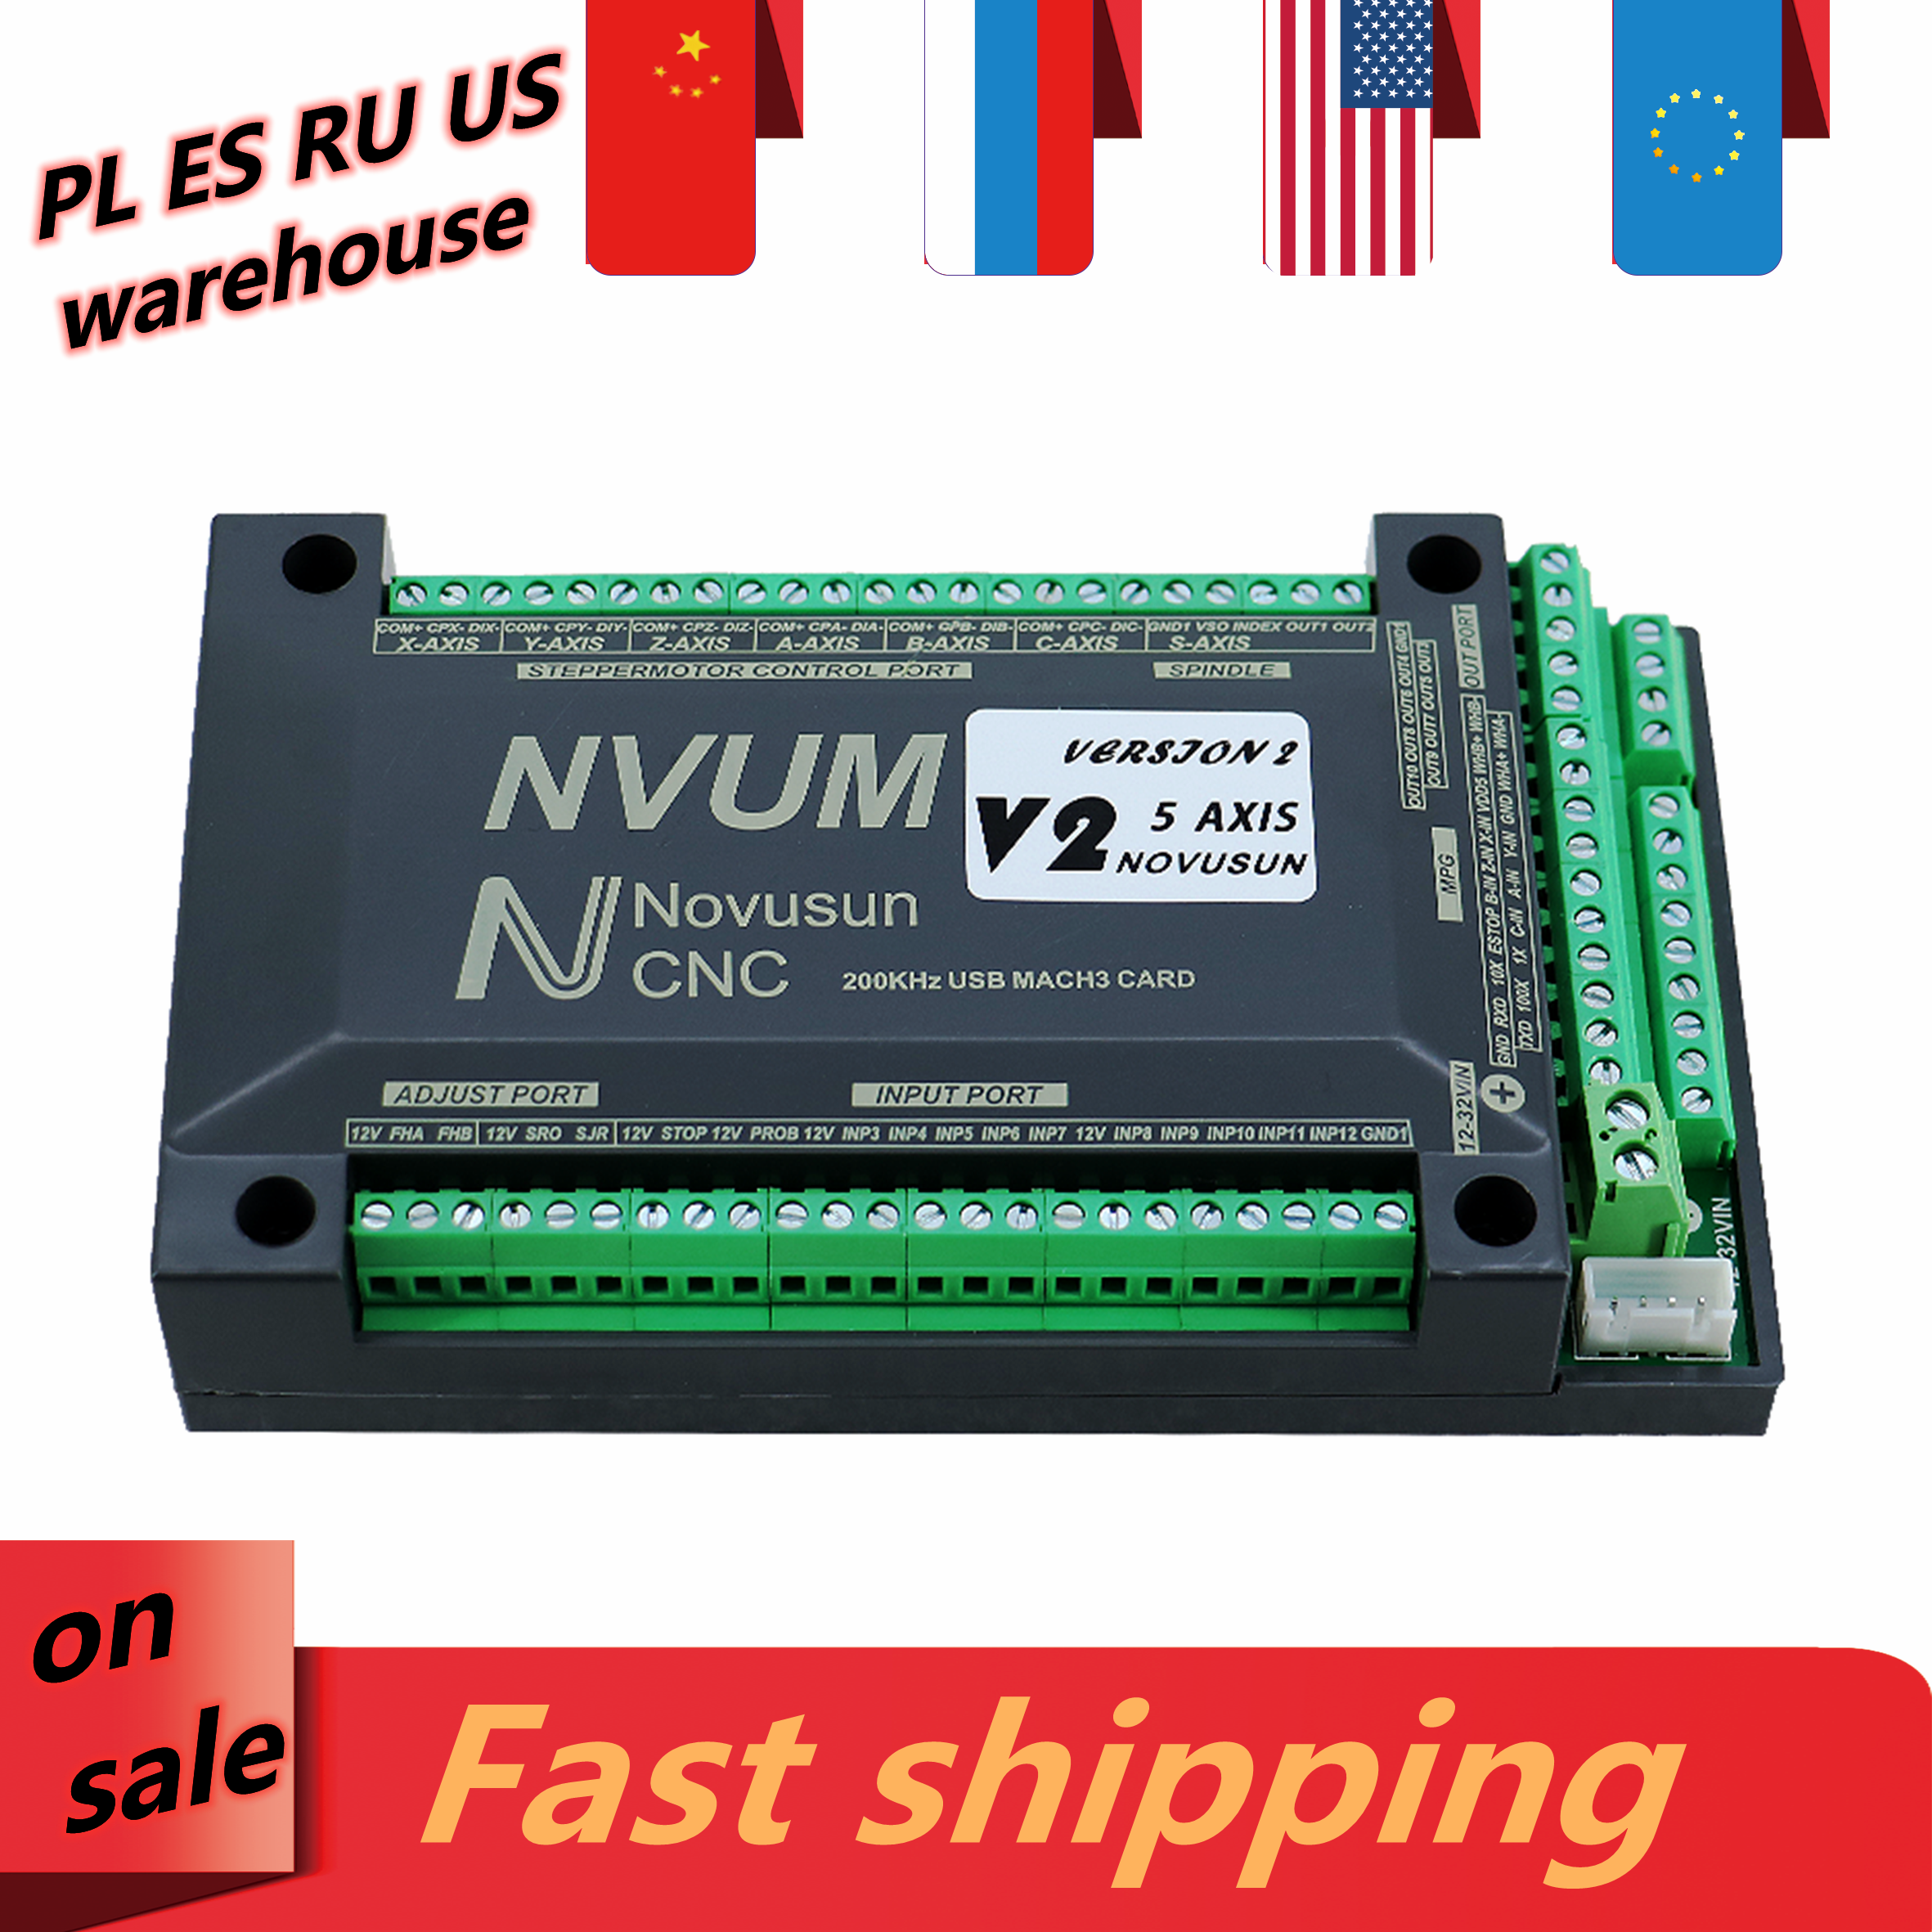 NVUM CNC motion card 3 axis 4 axis 5 axis 6 axis USB Ethernet 200Khz controller board support Microstep servo drive system